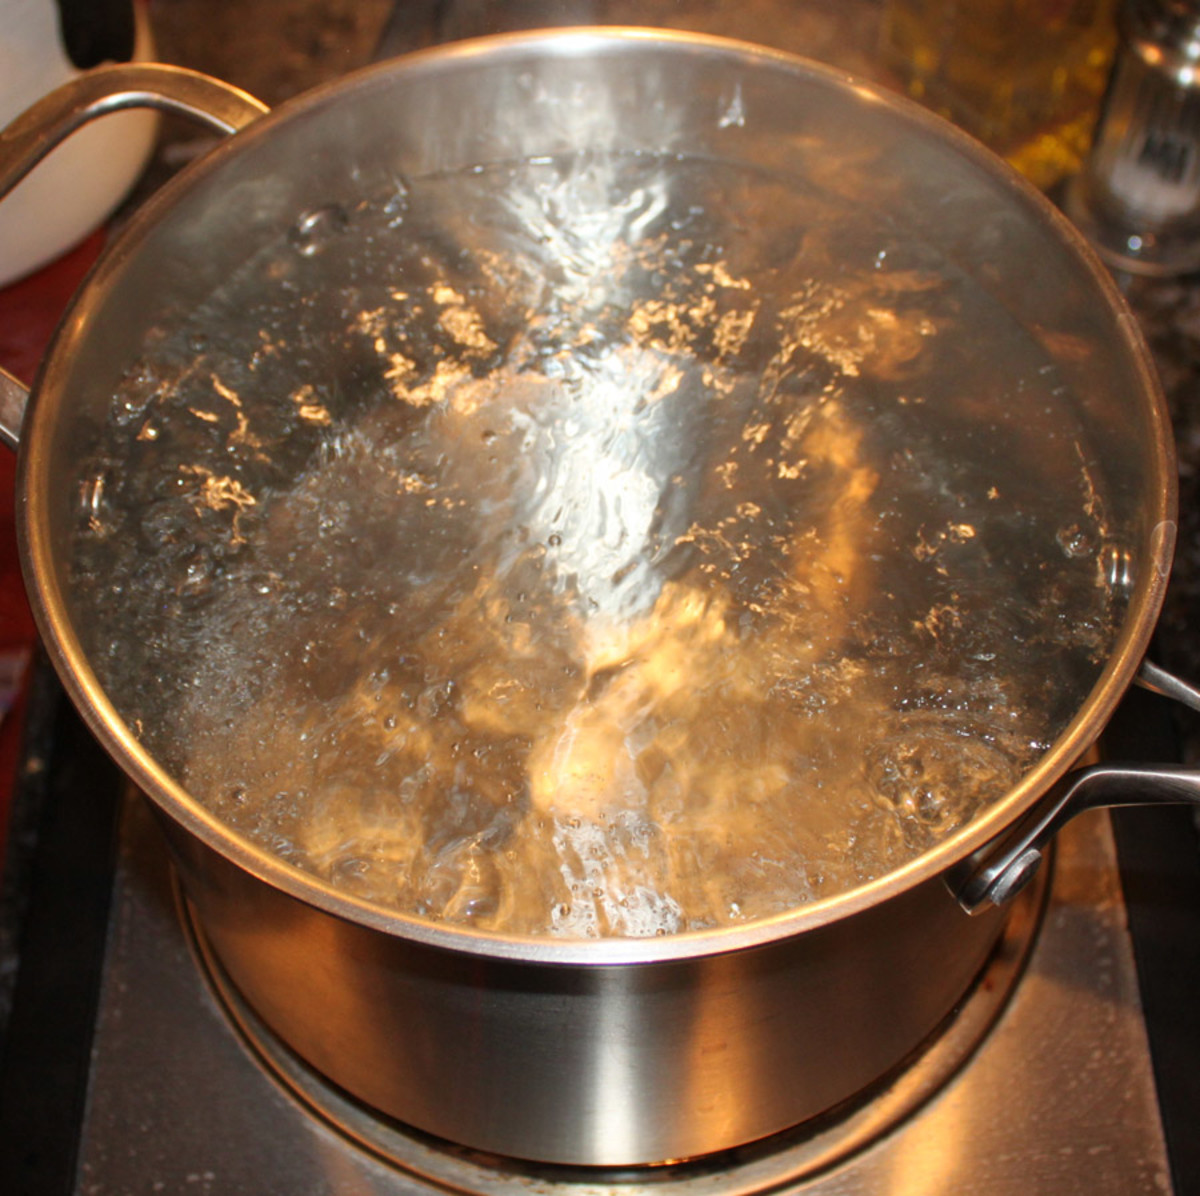 Bring water to a rolling boil before adding fettucine noodles.